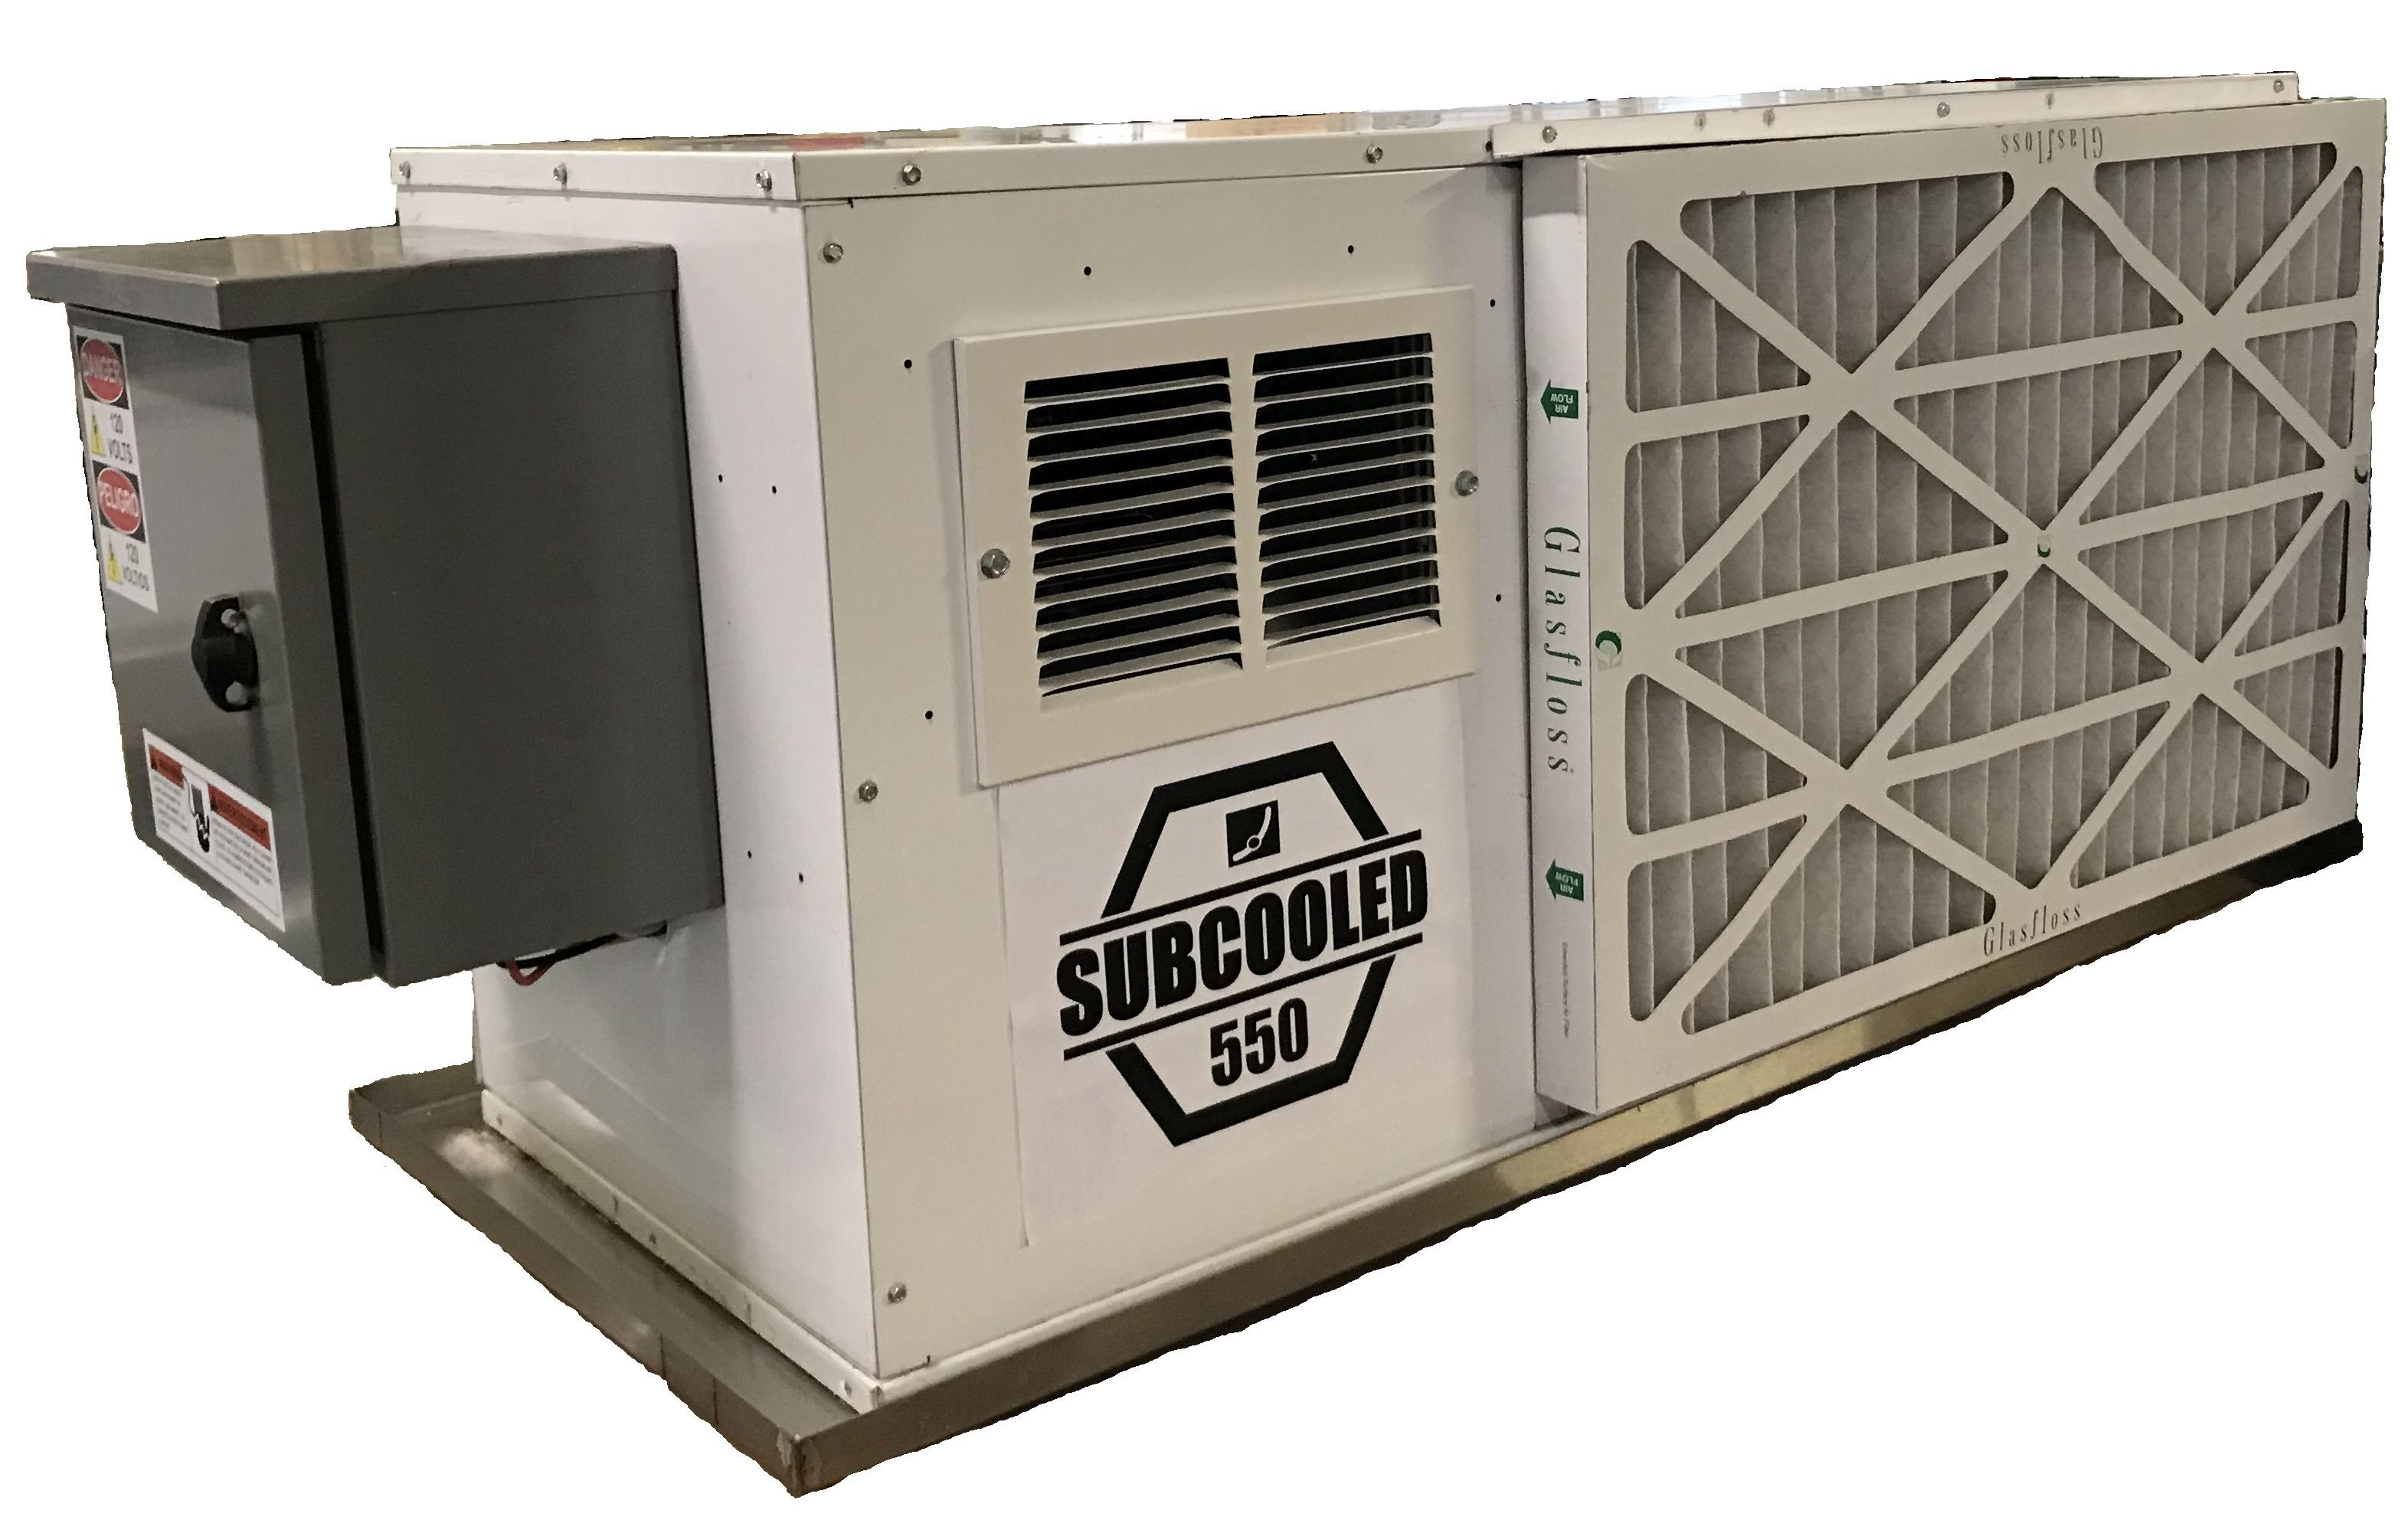 Picture of the Subcooled 550 Hybrid Dehumidifier - a Grow Room dehumidifier and cannabis dehumidifier.